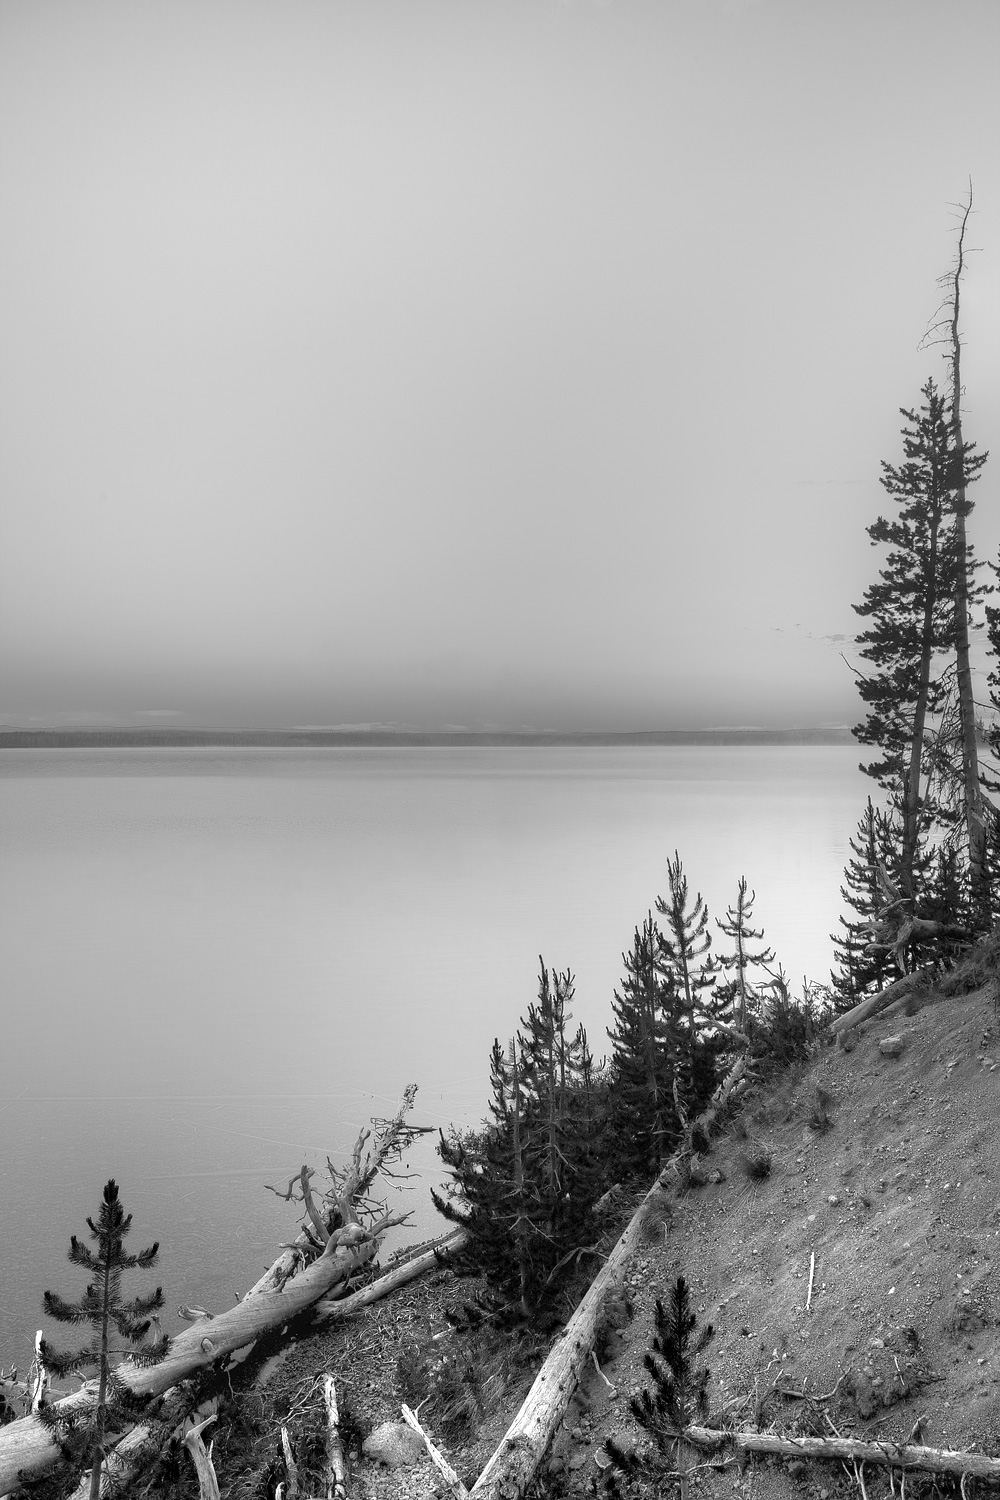 YSNP-Landscapes-BW-MG1149.jpg